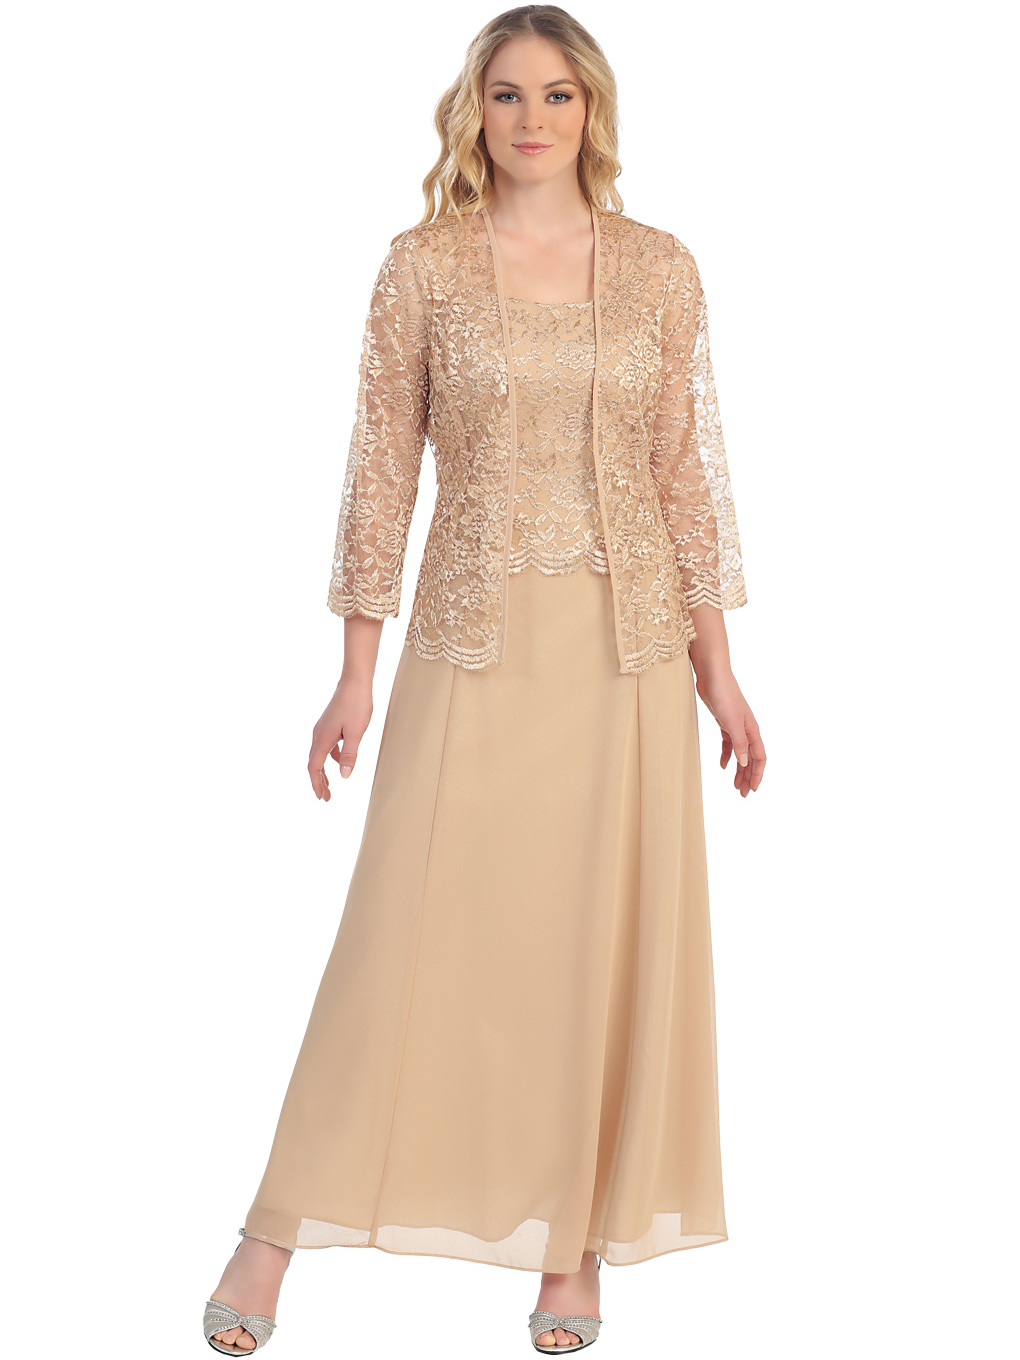 Long evening dress and jacket - Best dresses collection